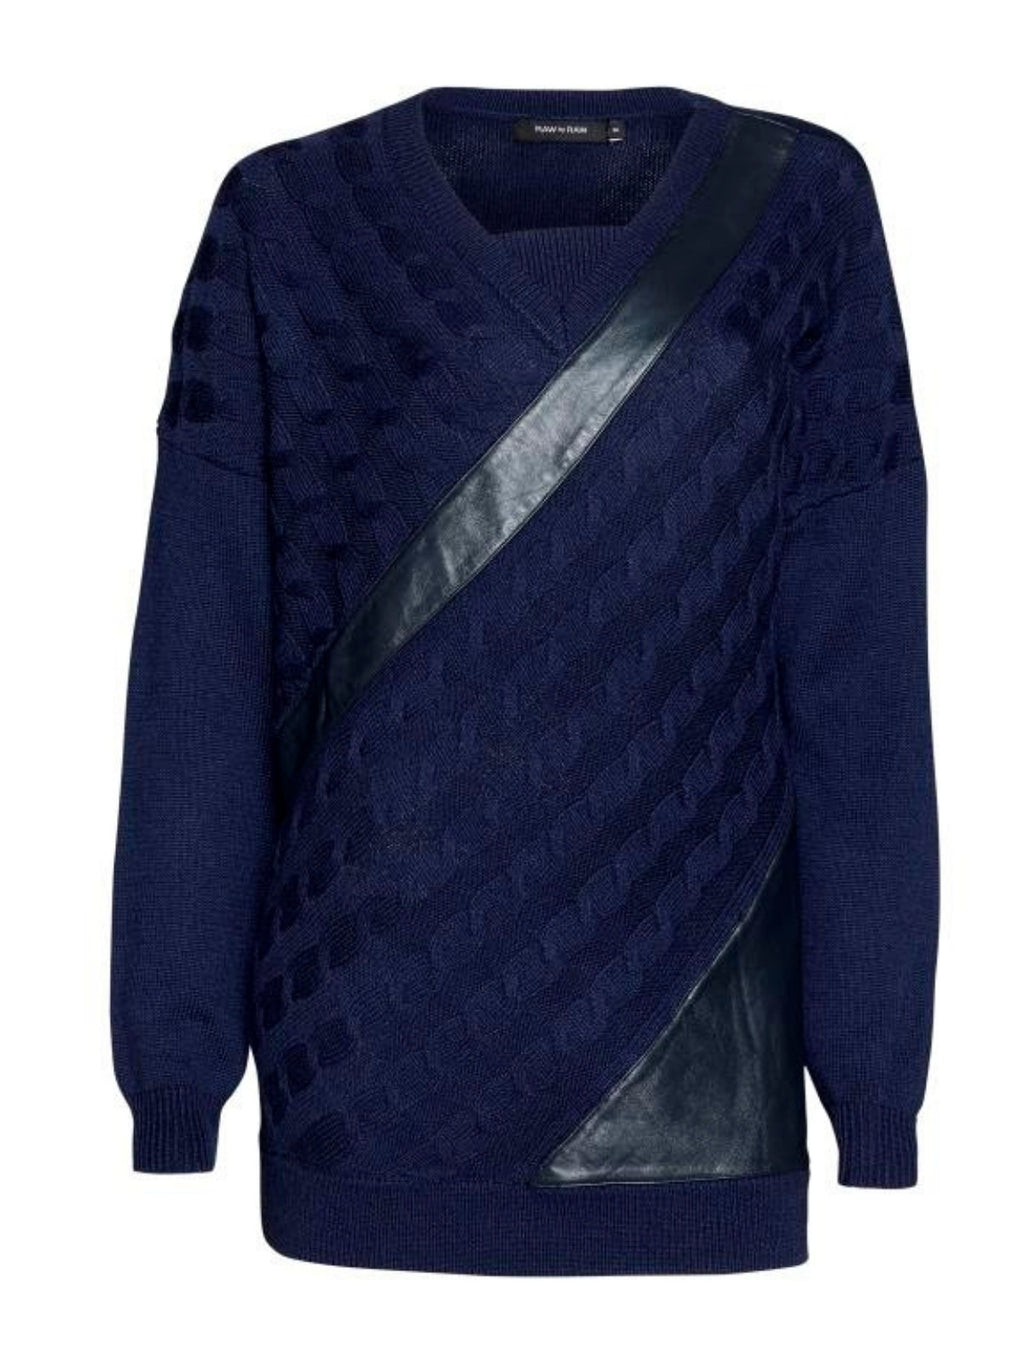 Raw By Raw Barclay Knit |Sapphire